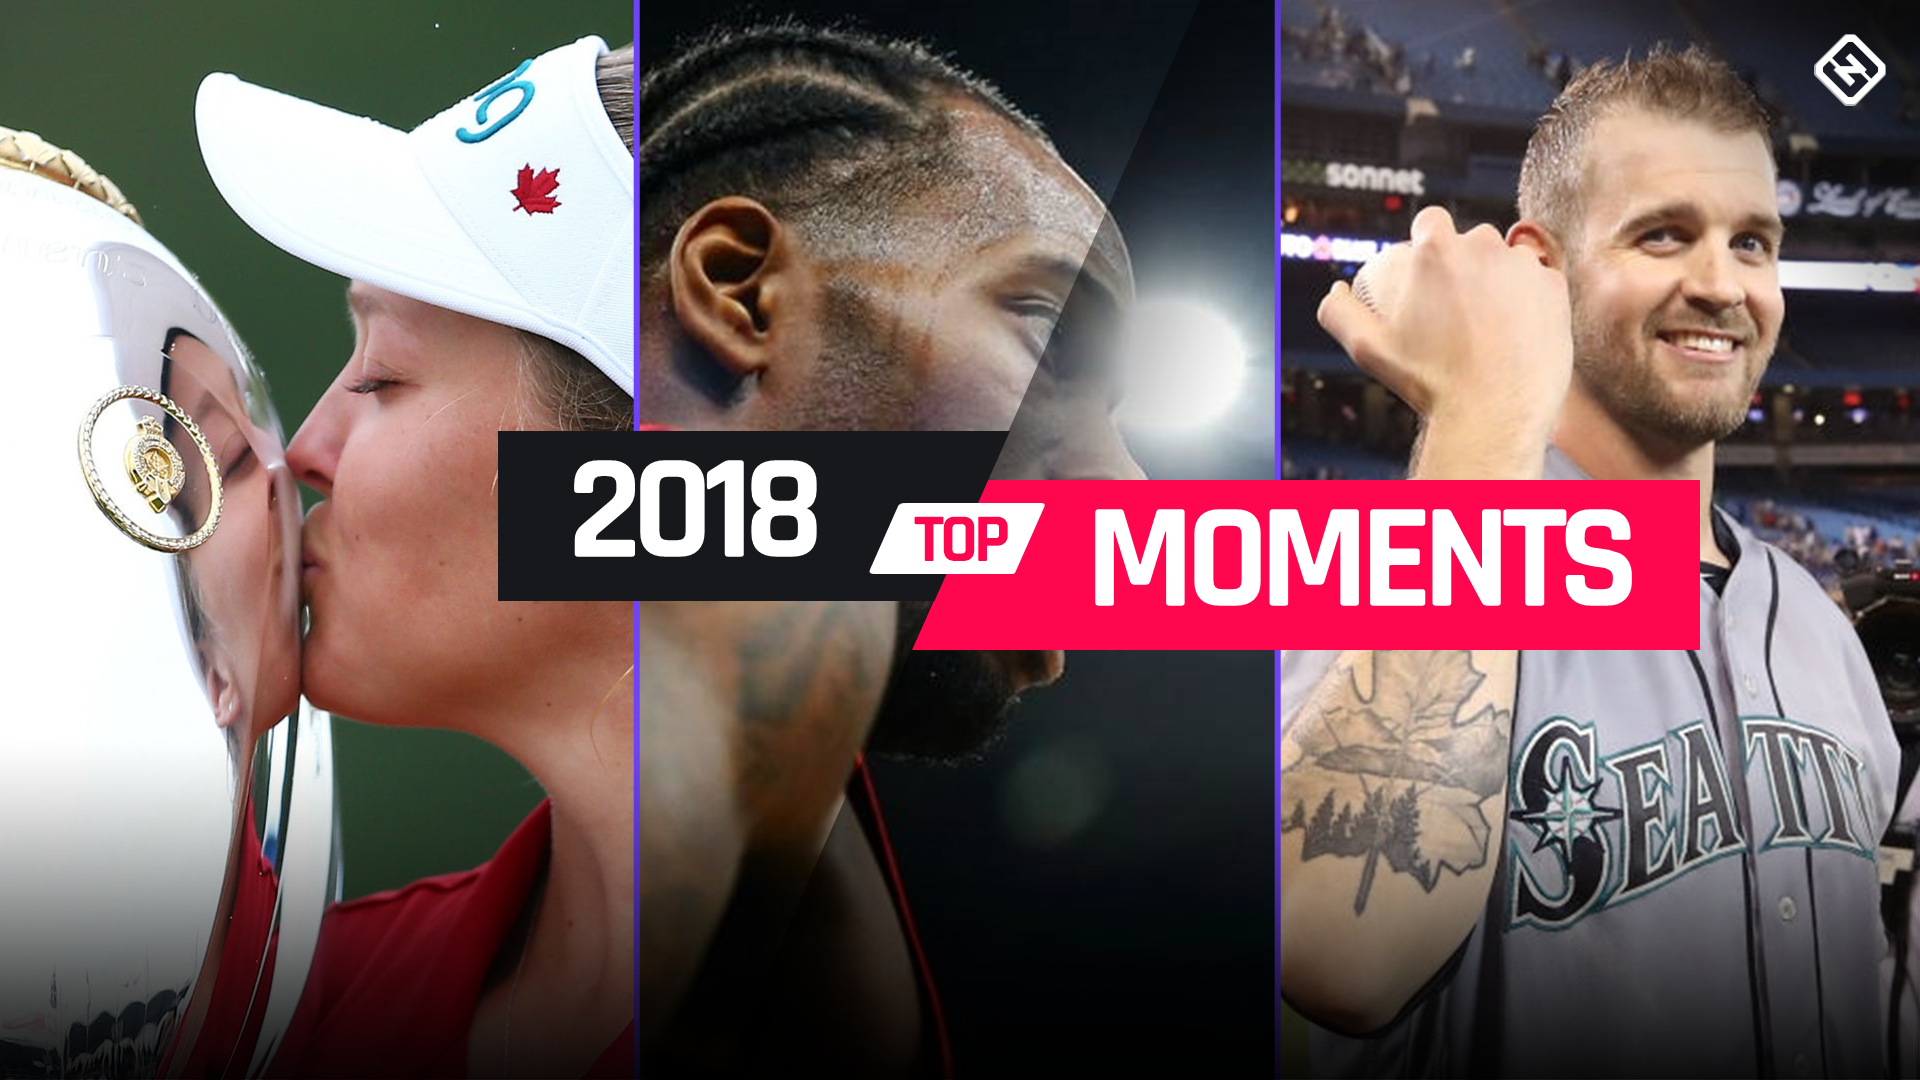 Year in review 2018: Top moments in Canadian sports